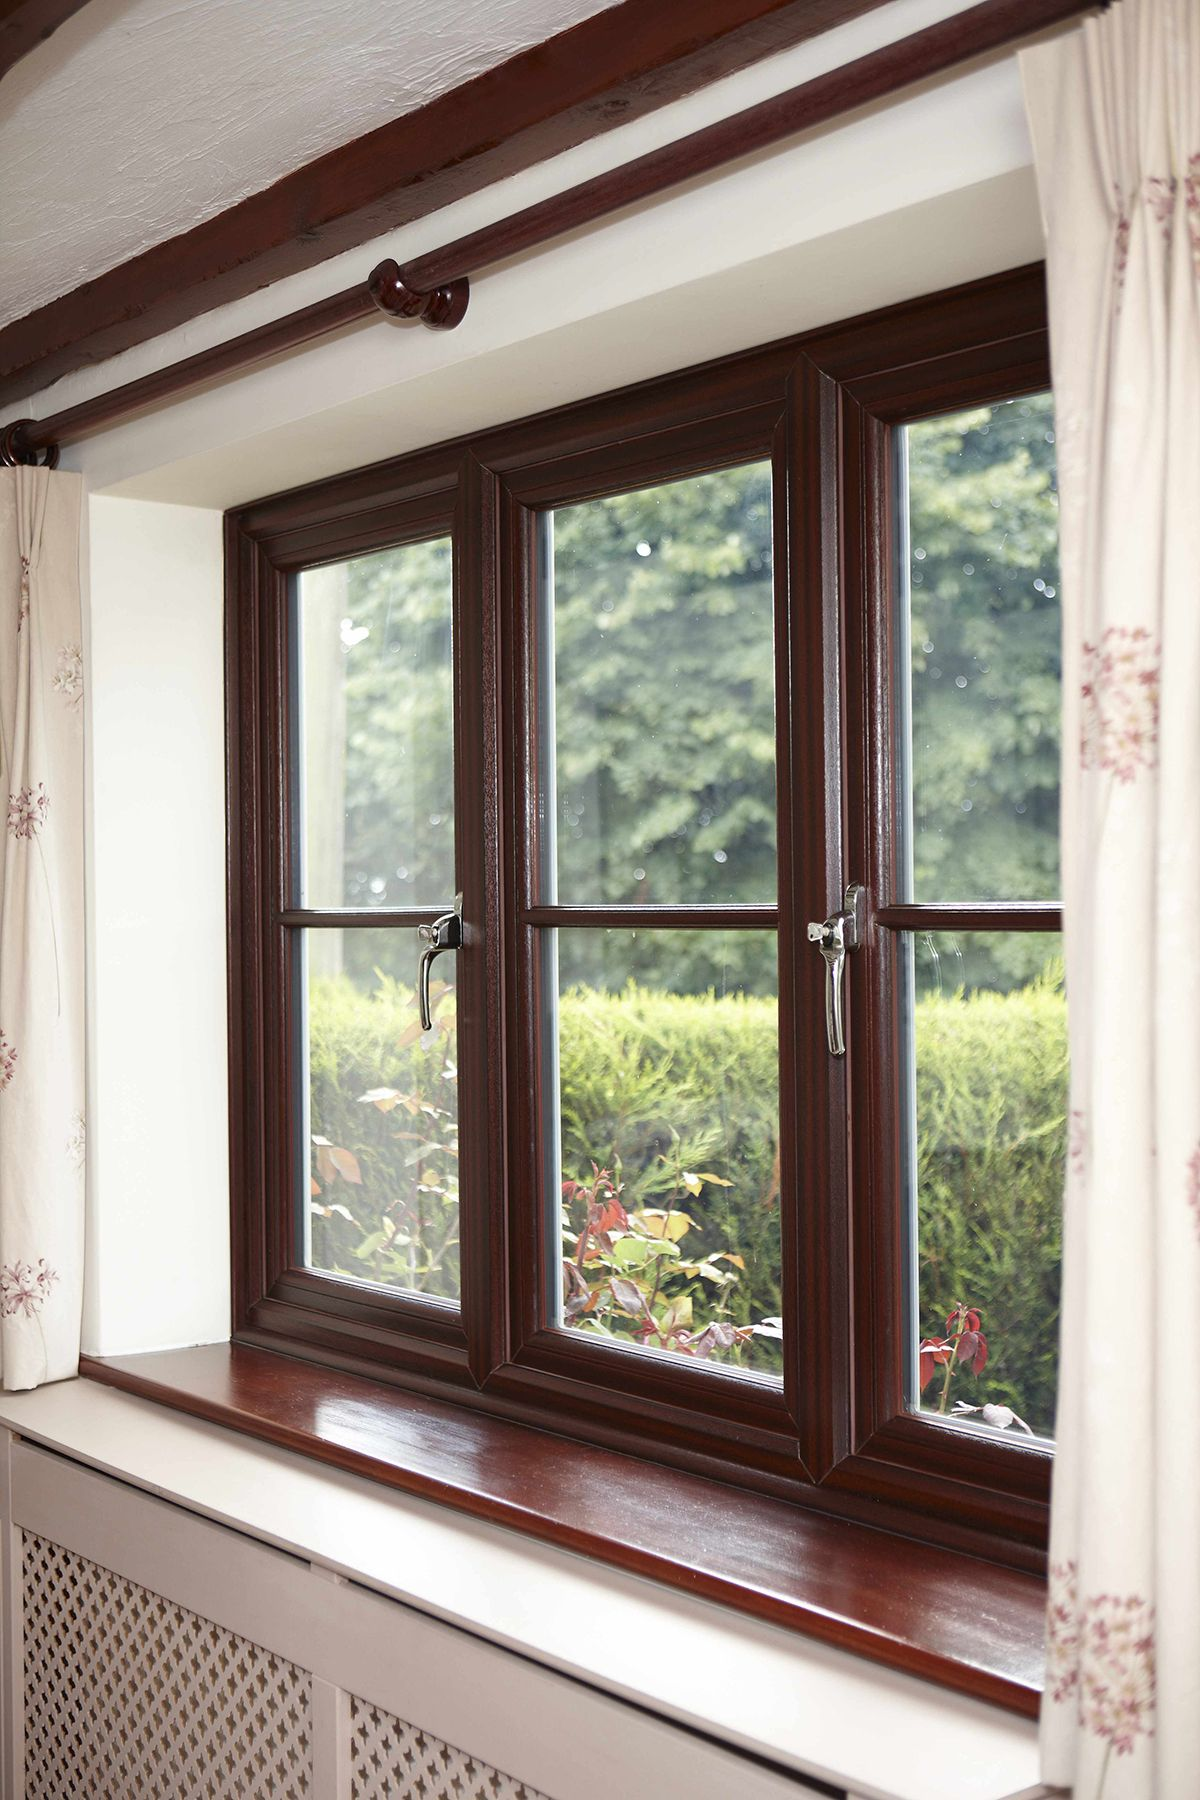 Rehau Upvc Casement Windows From Gfd Homes To Suit Any Home From The Classic Styles To The More Modern We Can Help Casement Windows Upvc Windows Rehau Windows